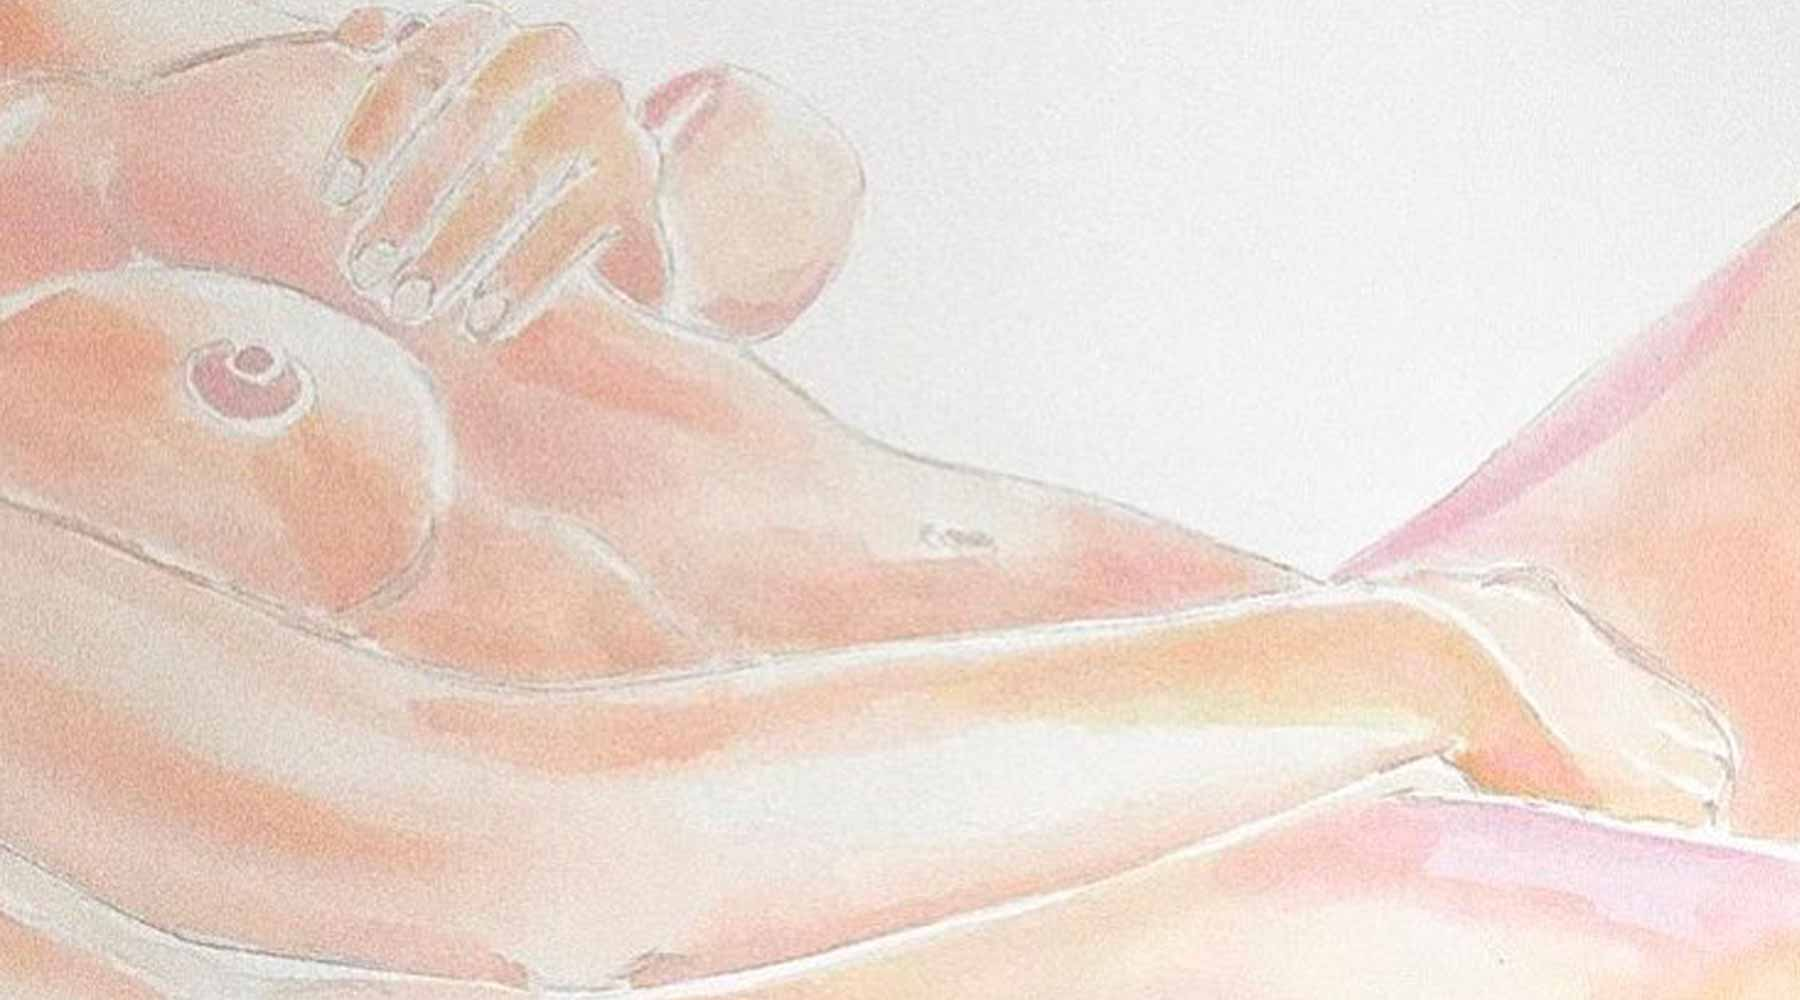 How to Self-Pleasure with the Eos Rose Quartz Pleasure Wand